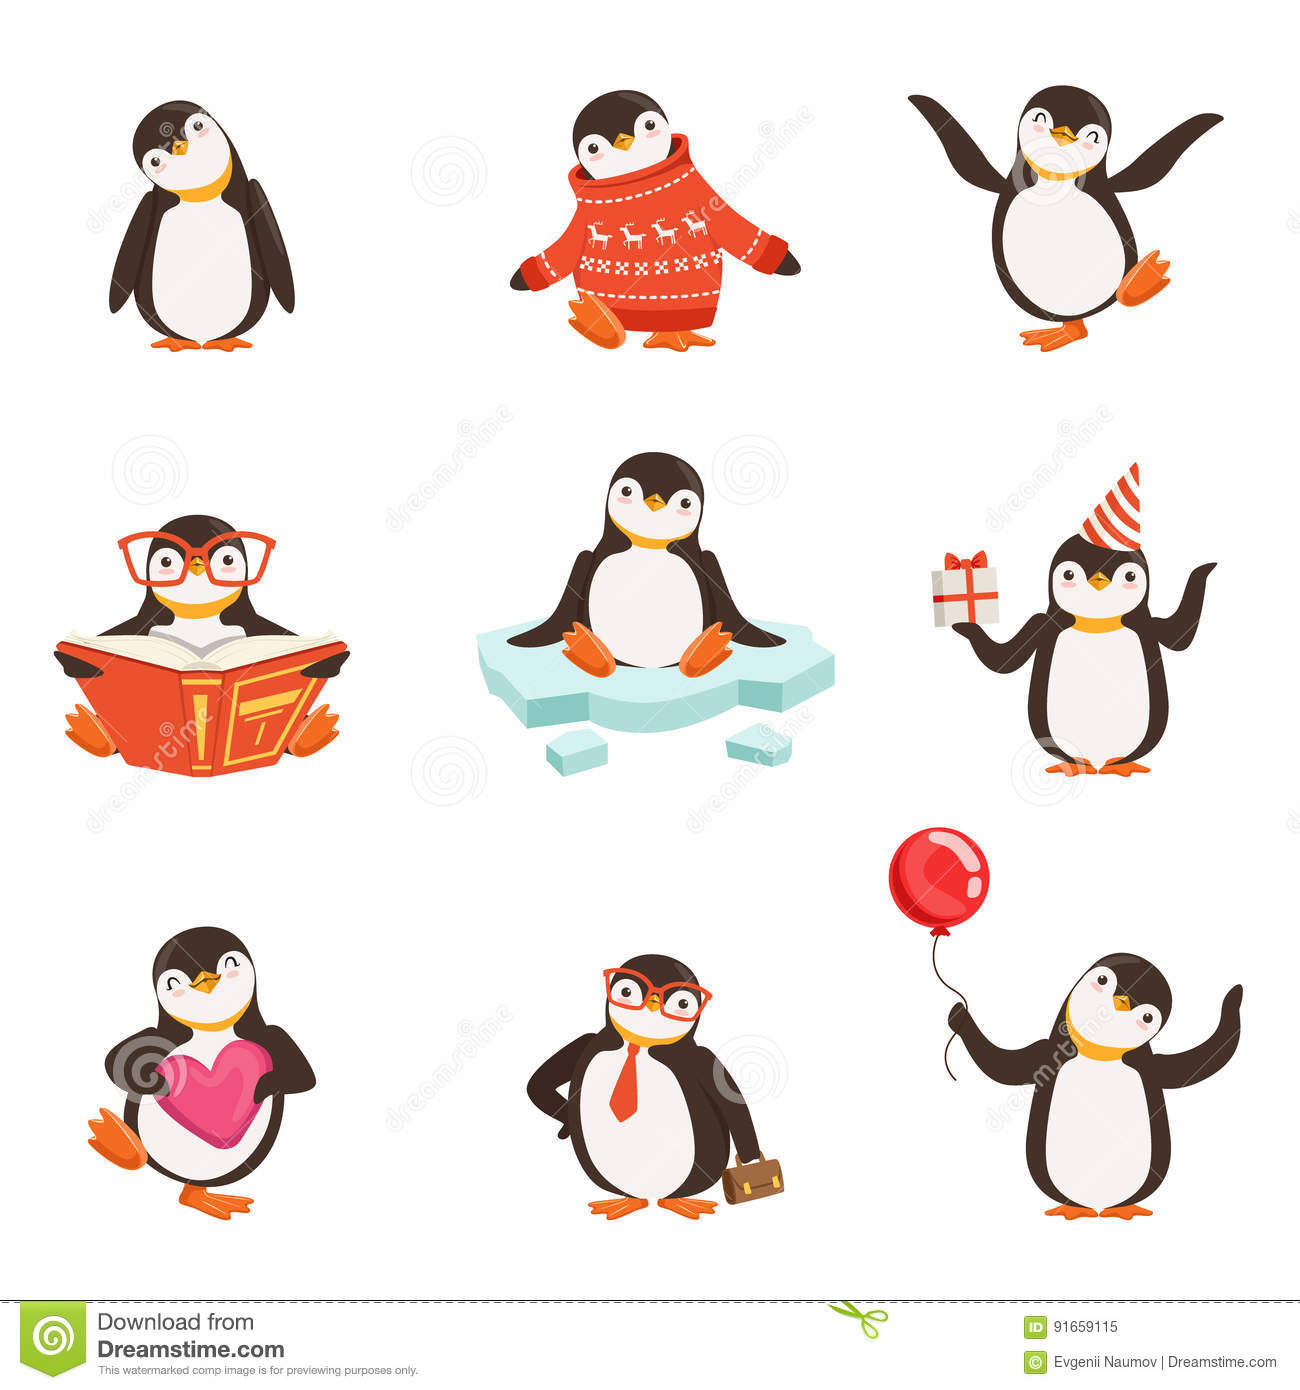 Cute Little Penguin Cartoon Characters Set For Label Design Colorful Detailed Vector